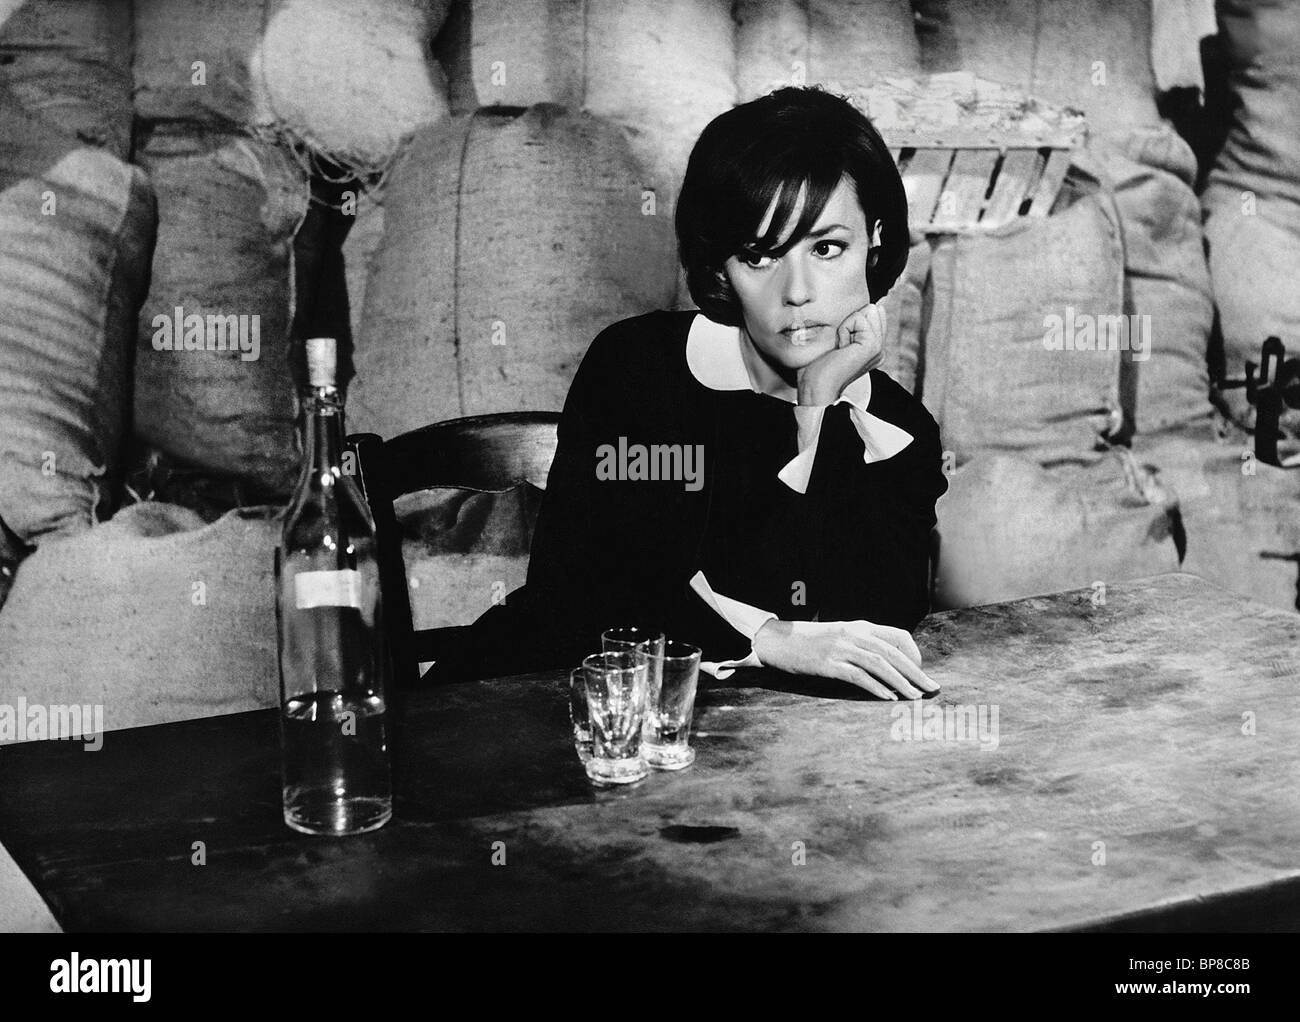 JEANNE MOREAU THE DIARY OF A CHAMBERMAID (1964) - Stock Image